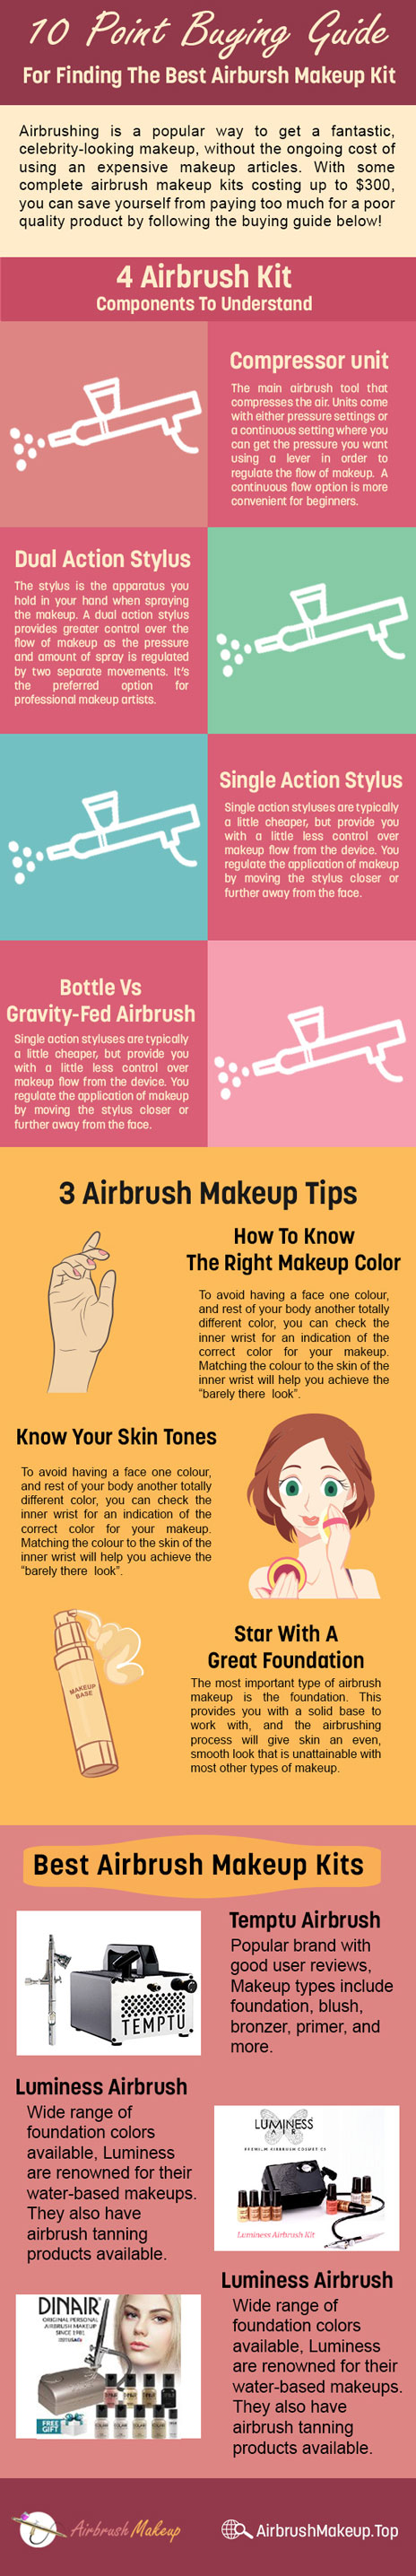 Airbrush-Makeup-Kit-Buying-Guide